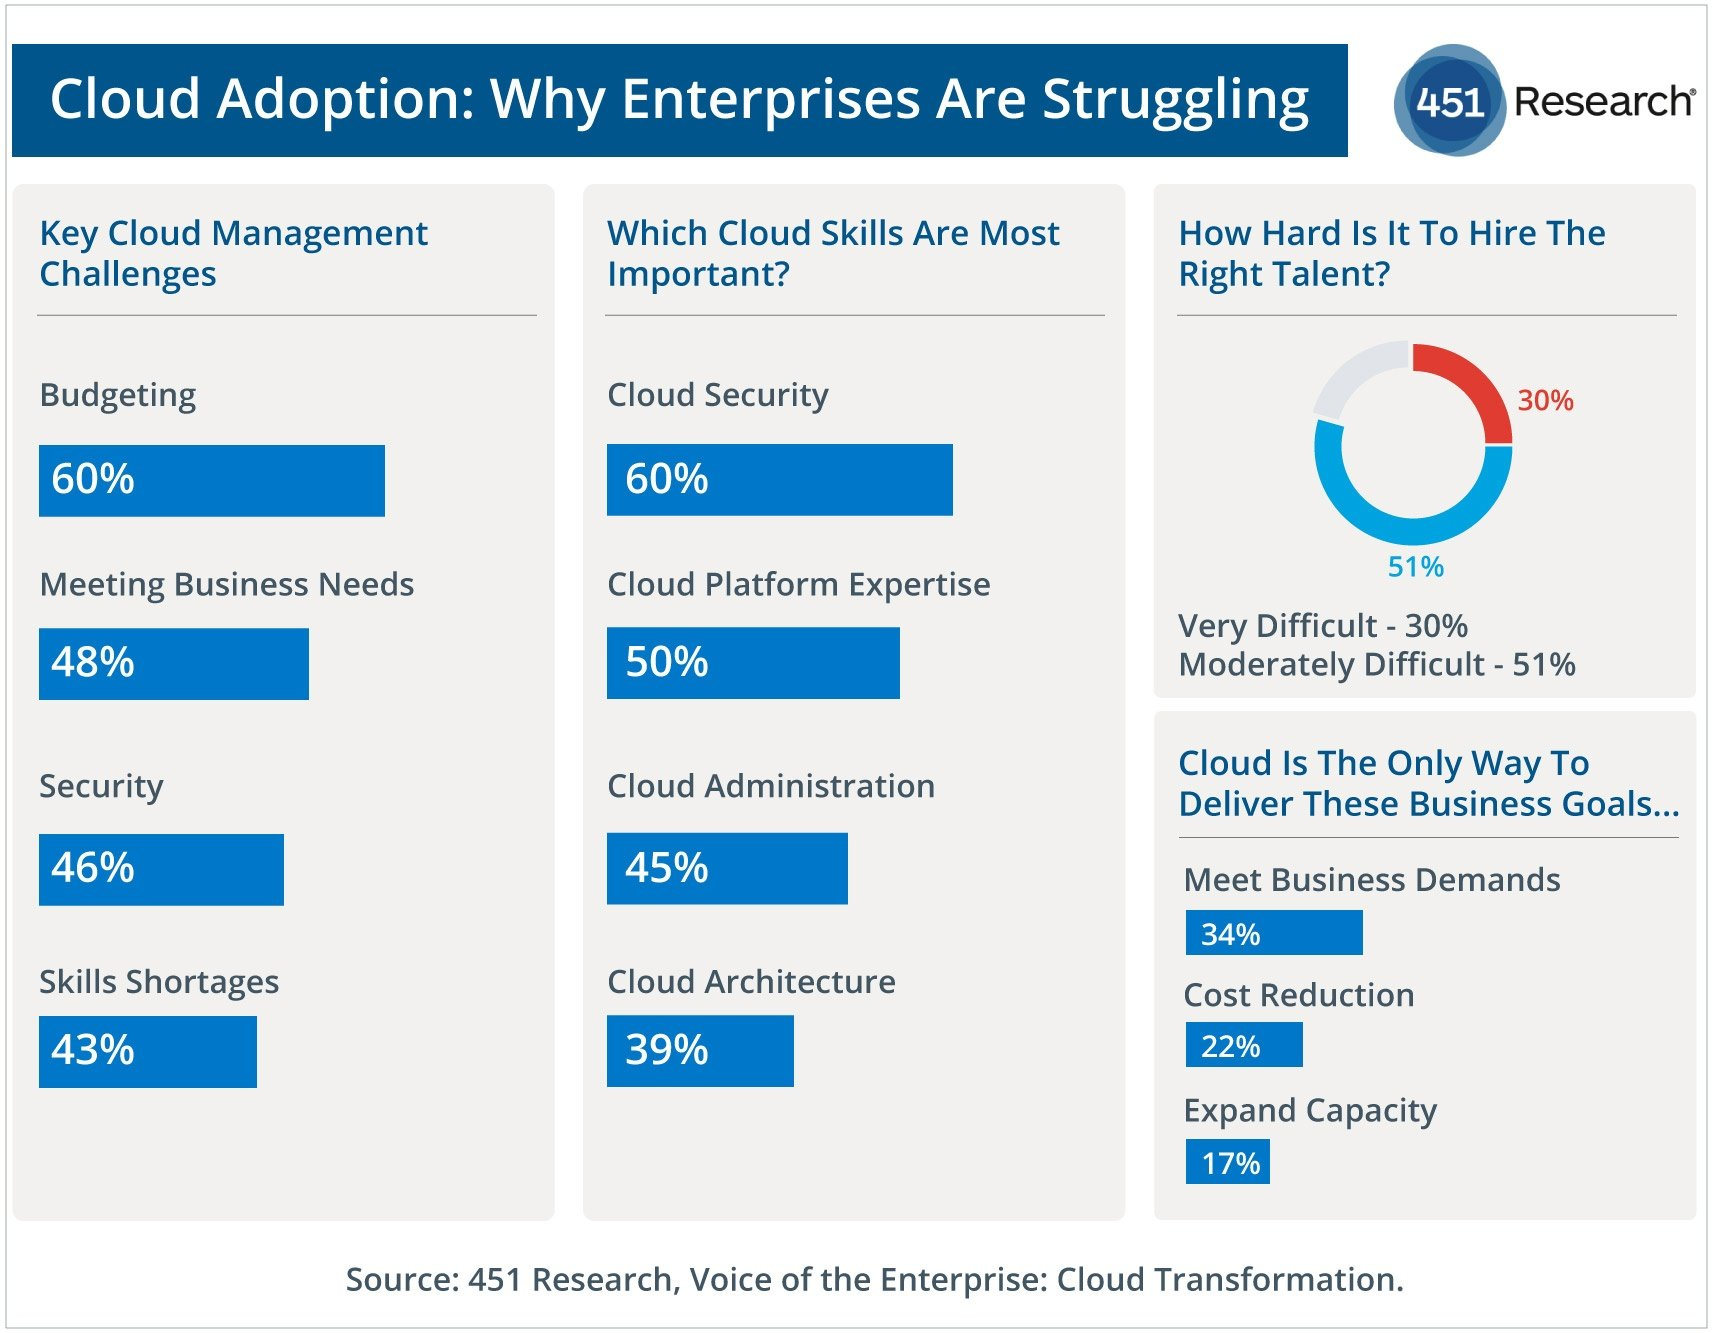 Cloud Adoption: Why Enterprises Are Struggling